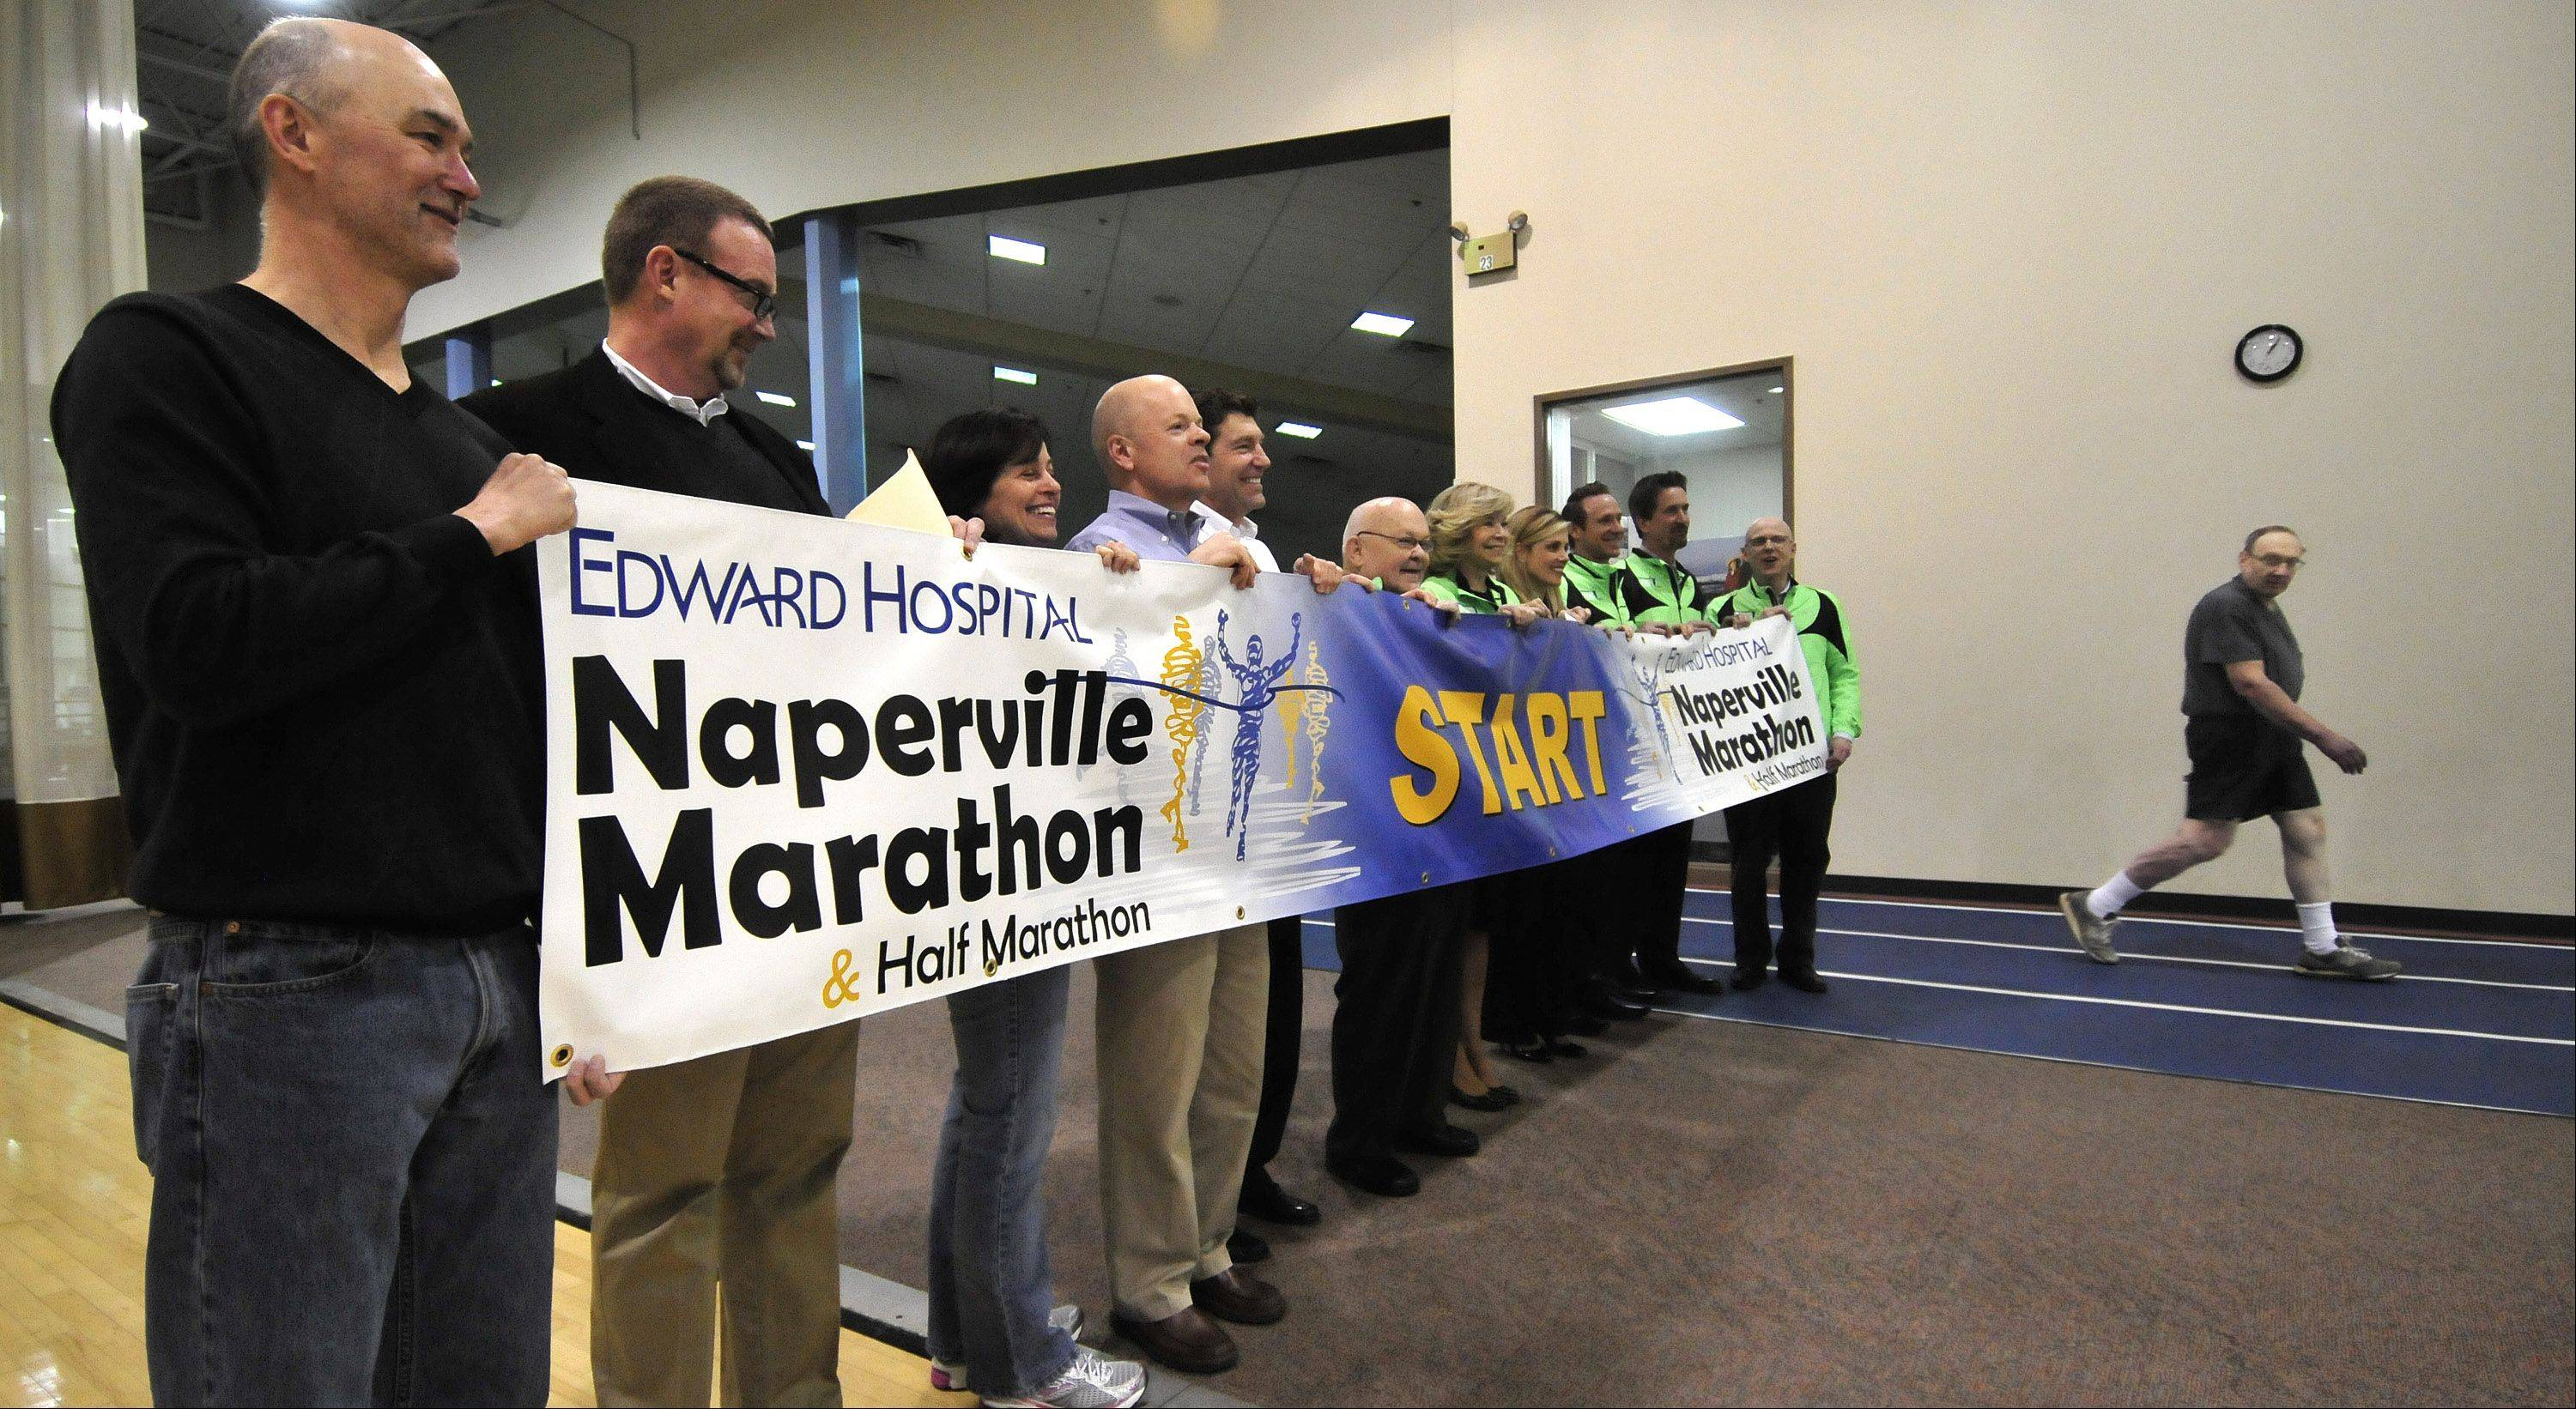 The Edward Hospital Naperville Marathon's starting banner was unfurled Monday at Edward Health & Fitness Center in Naperville.